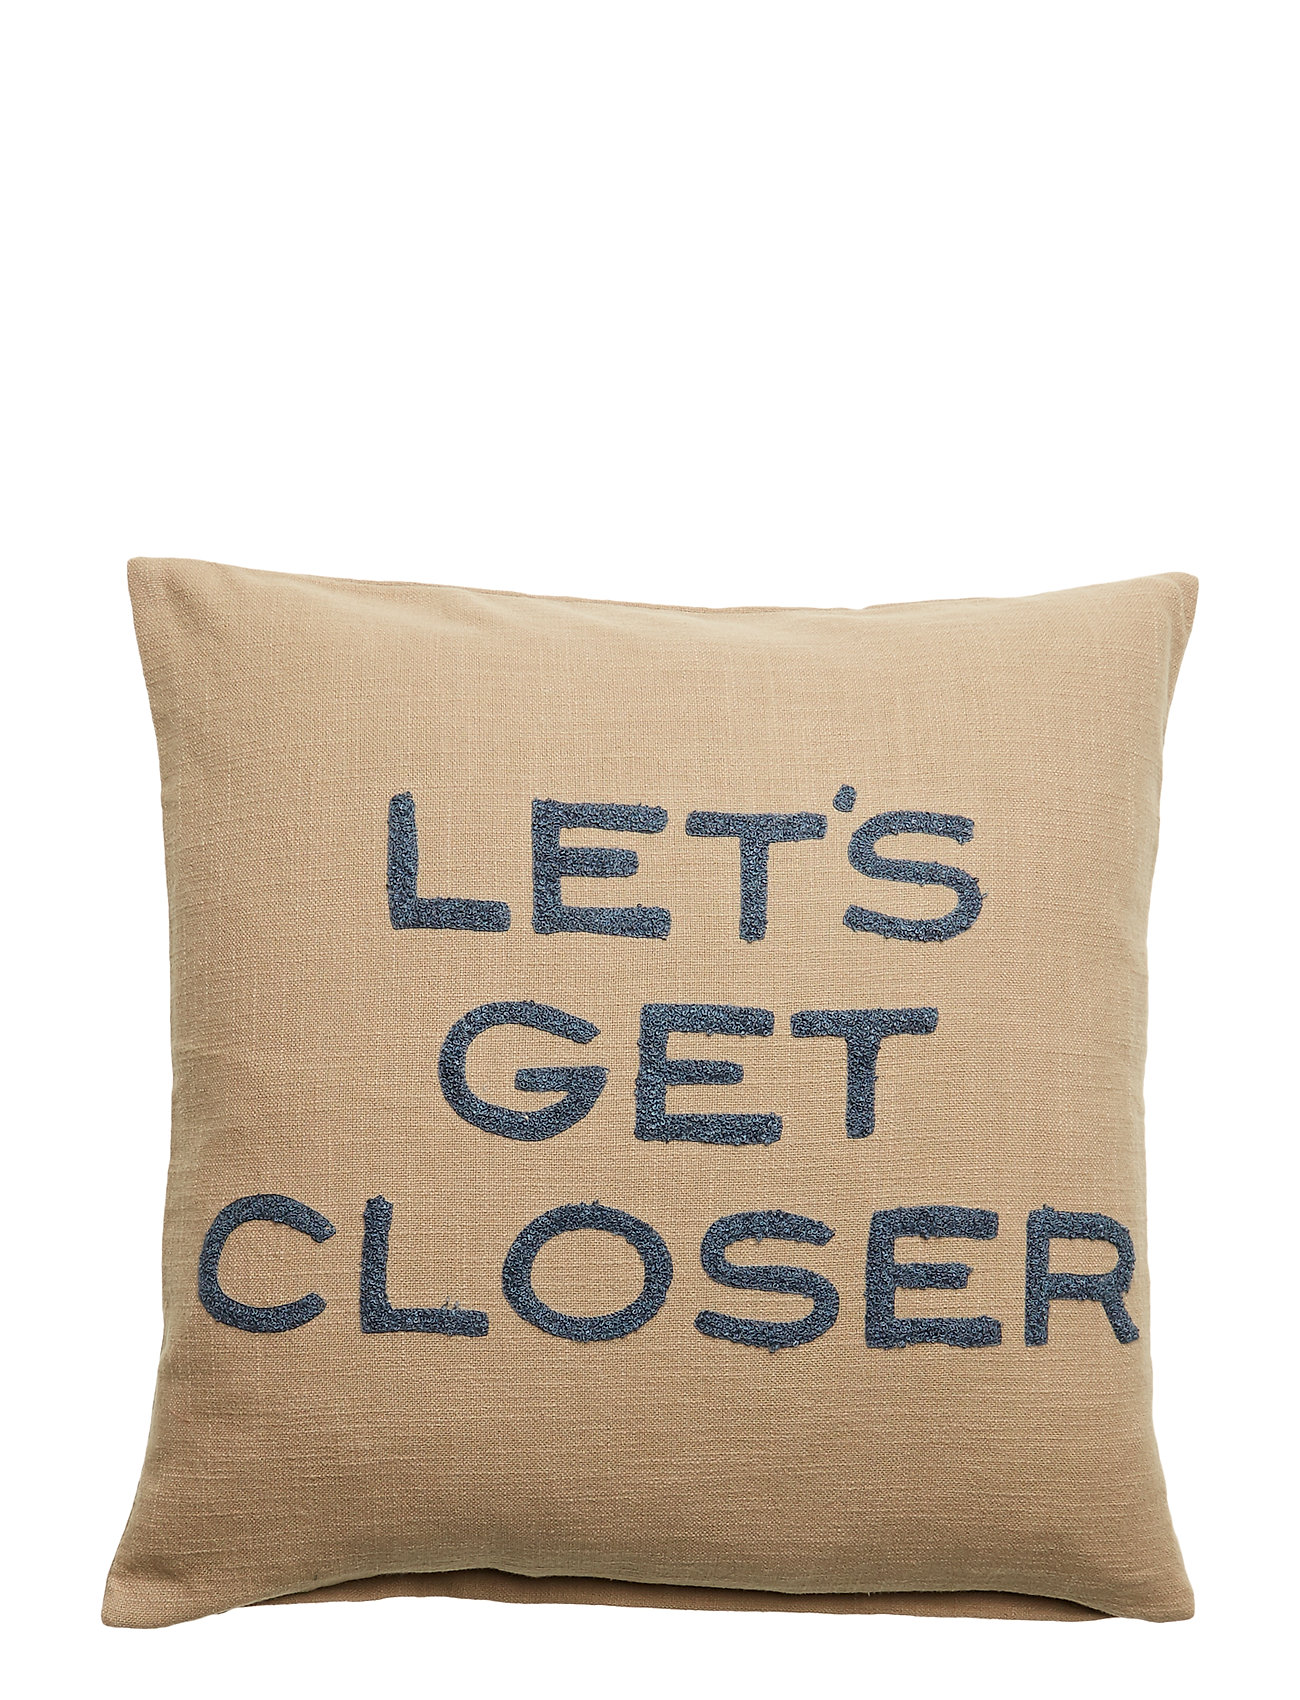 DAY Home Day Lets get´closer Cushion Cover - SAFARI